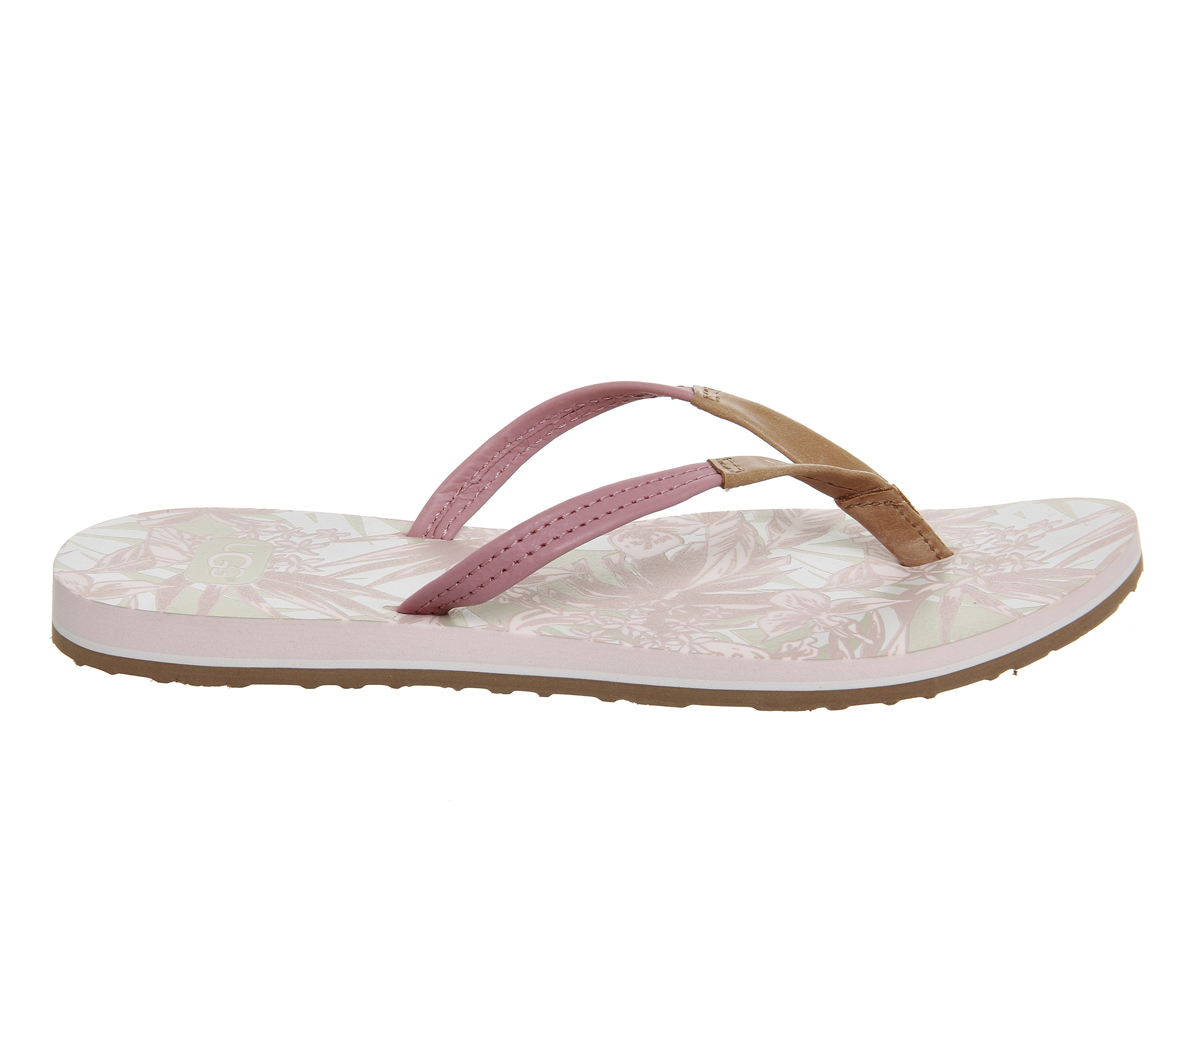 ugg magnolia flip flops in pink lyst. Black Bedroom Furniture Sets. Home Design Ideas